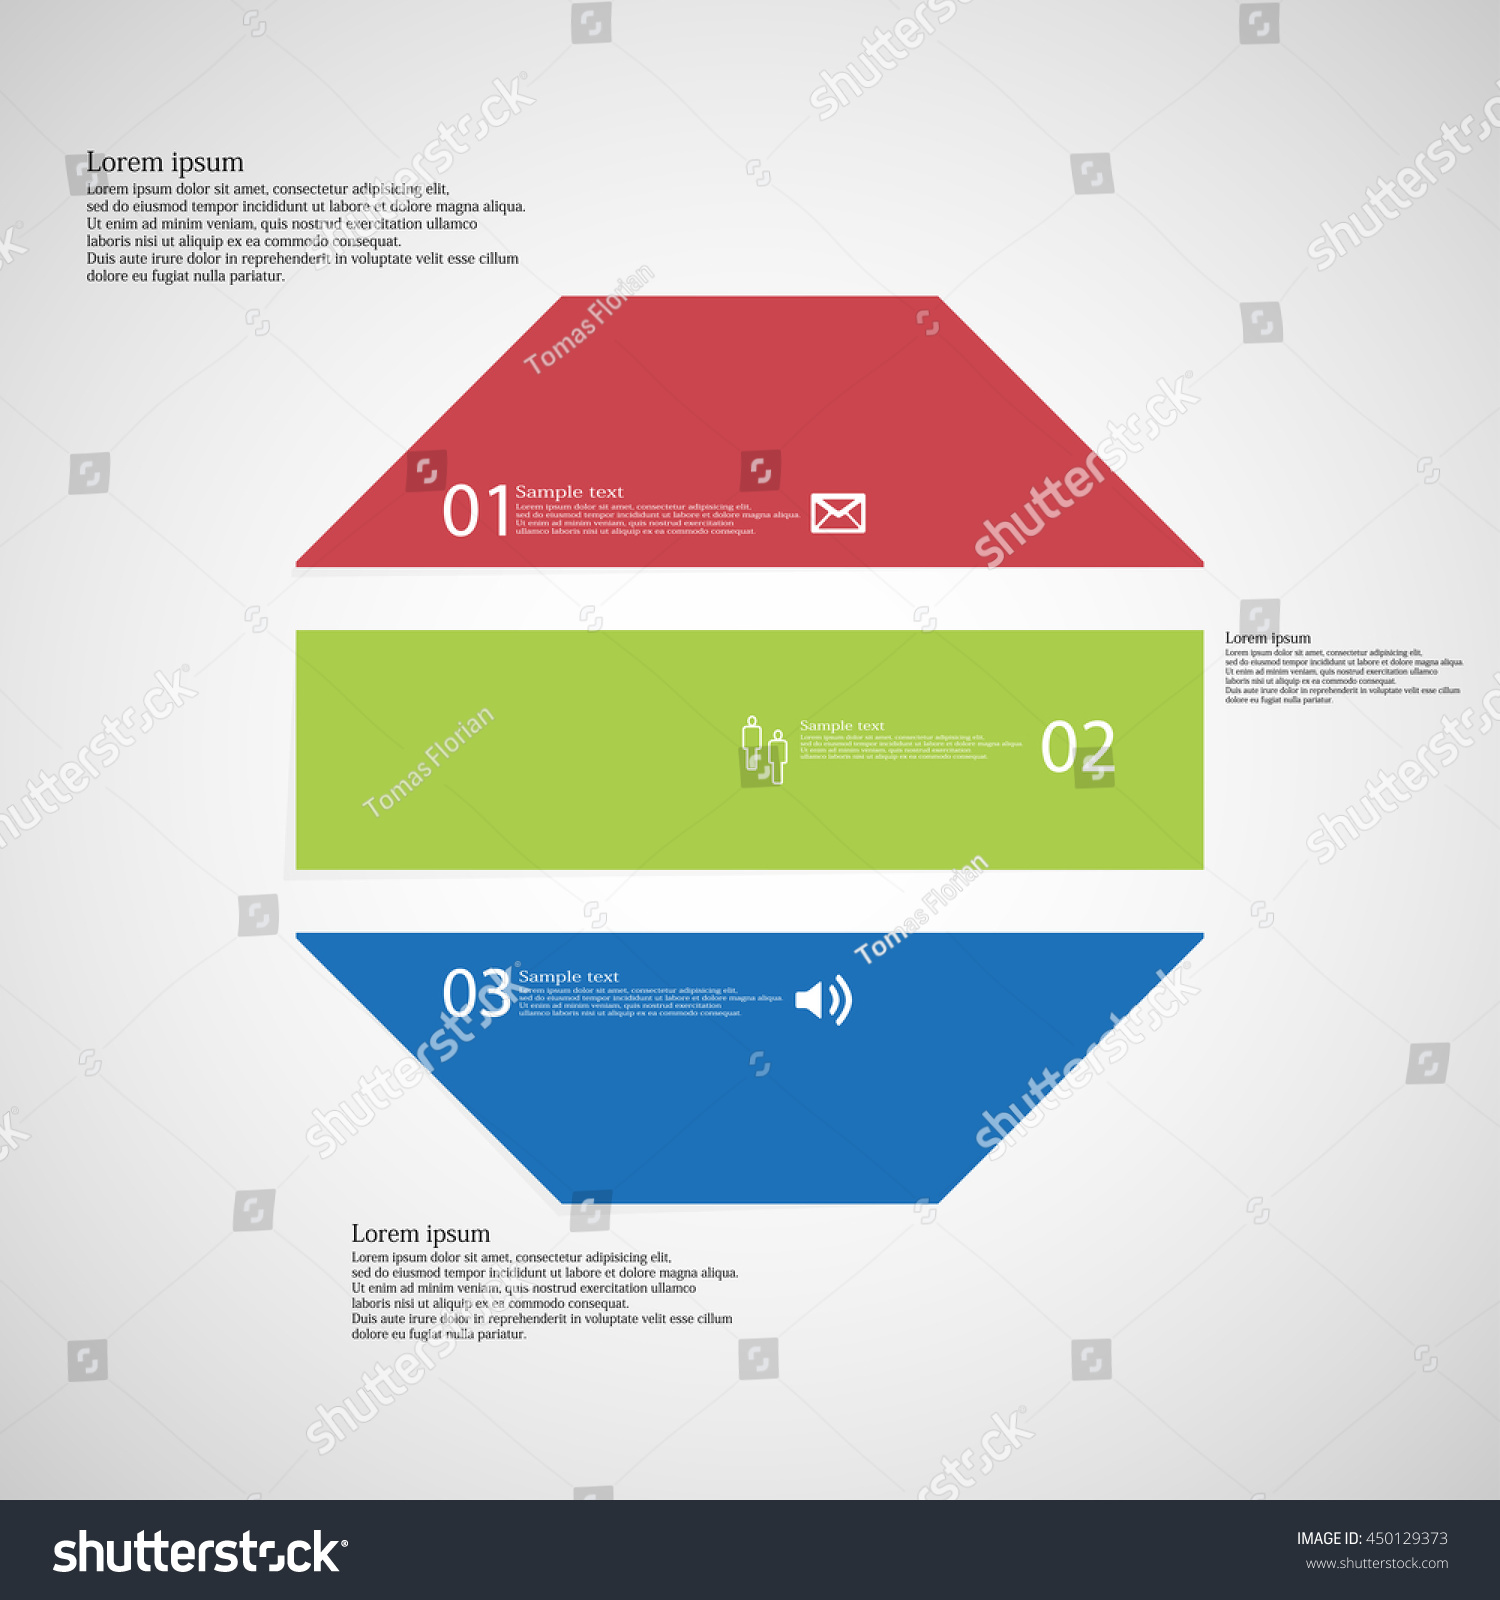 Illustration Infographic Template Shape Octagon Object Stock Vector